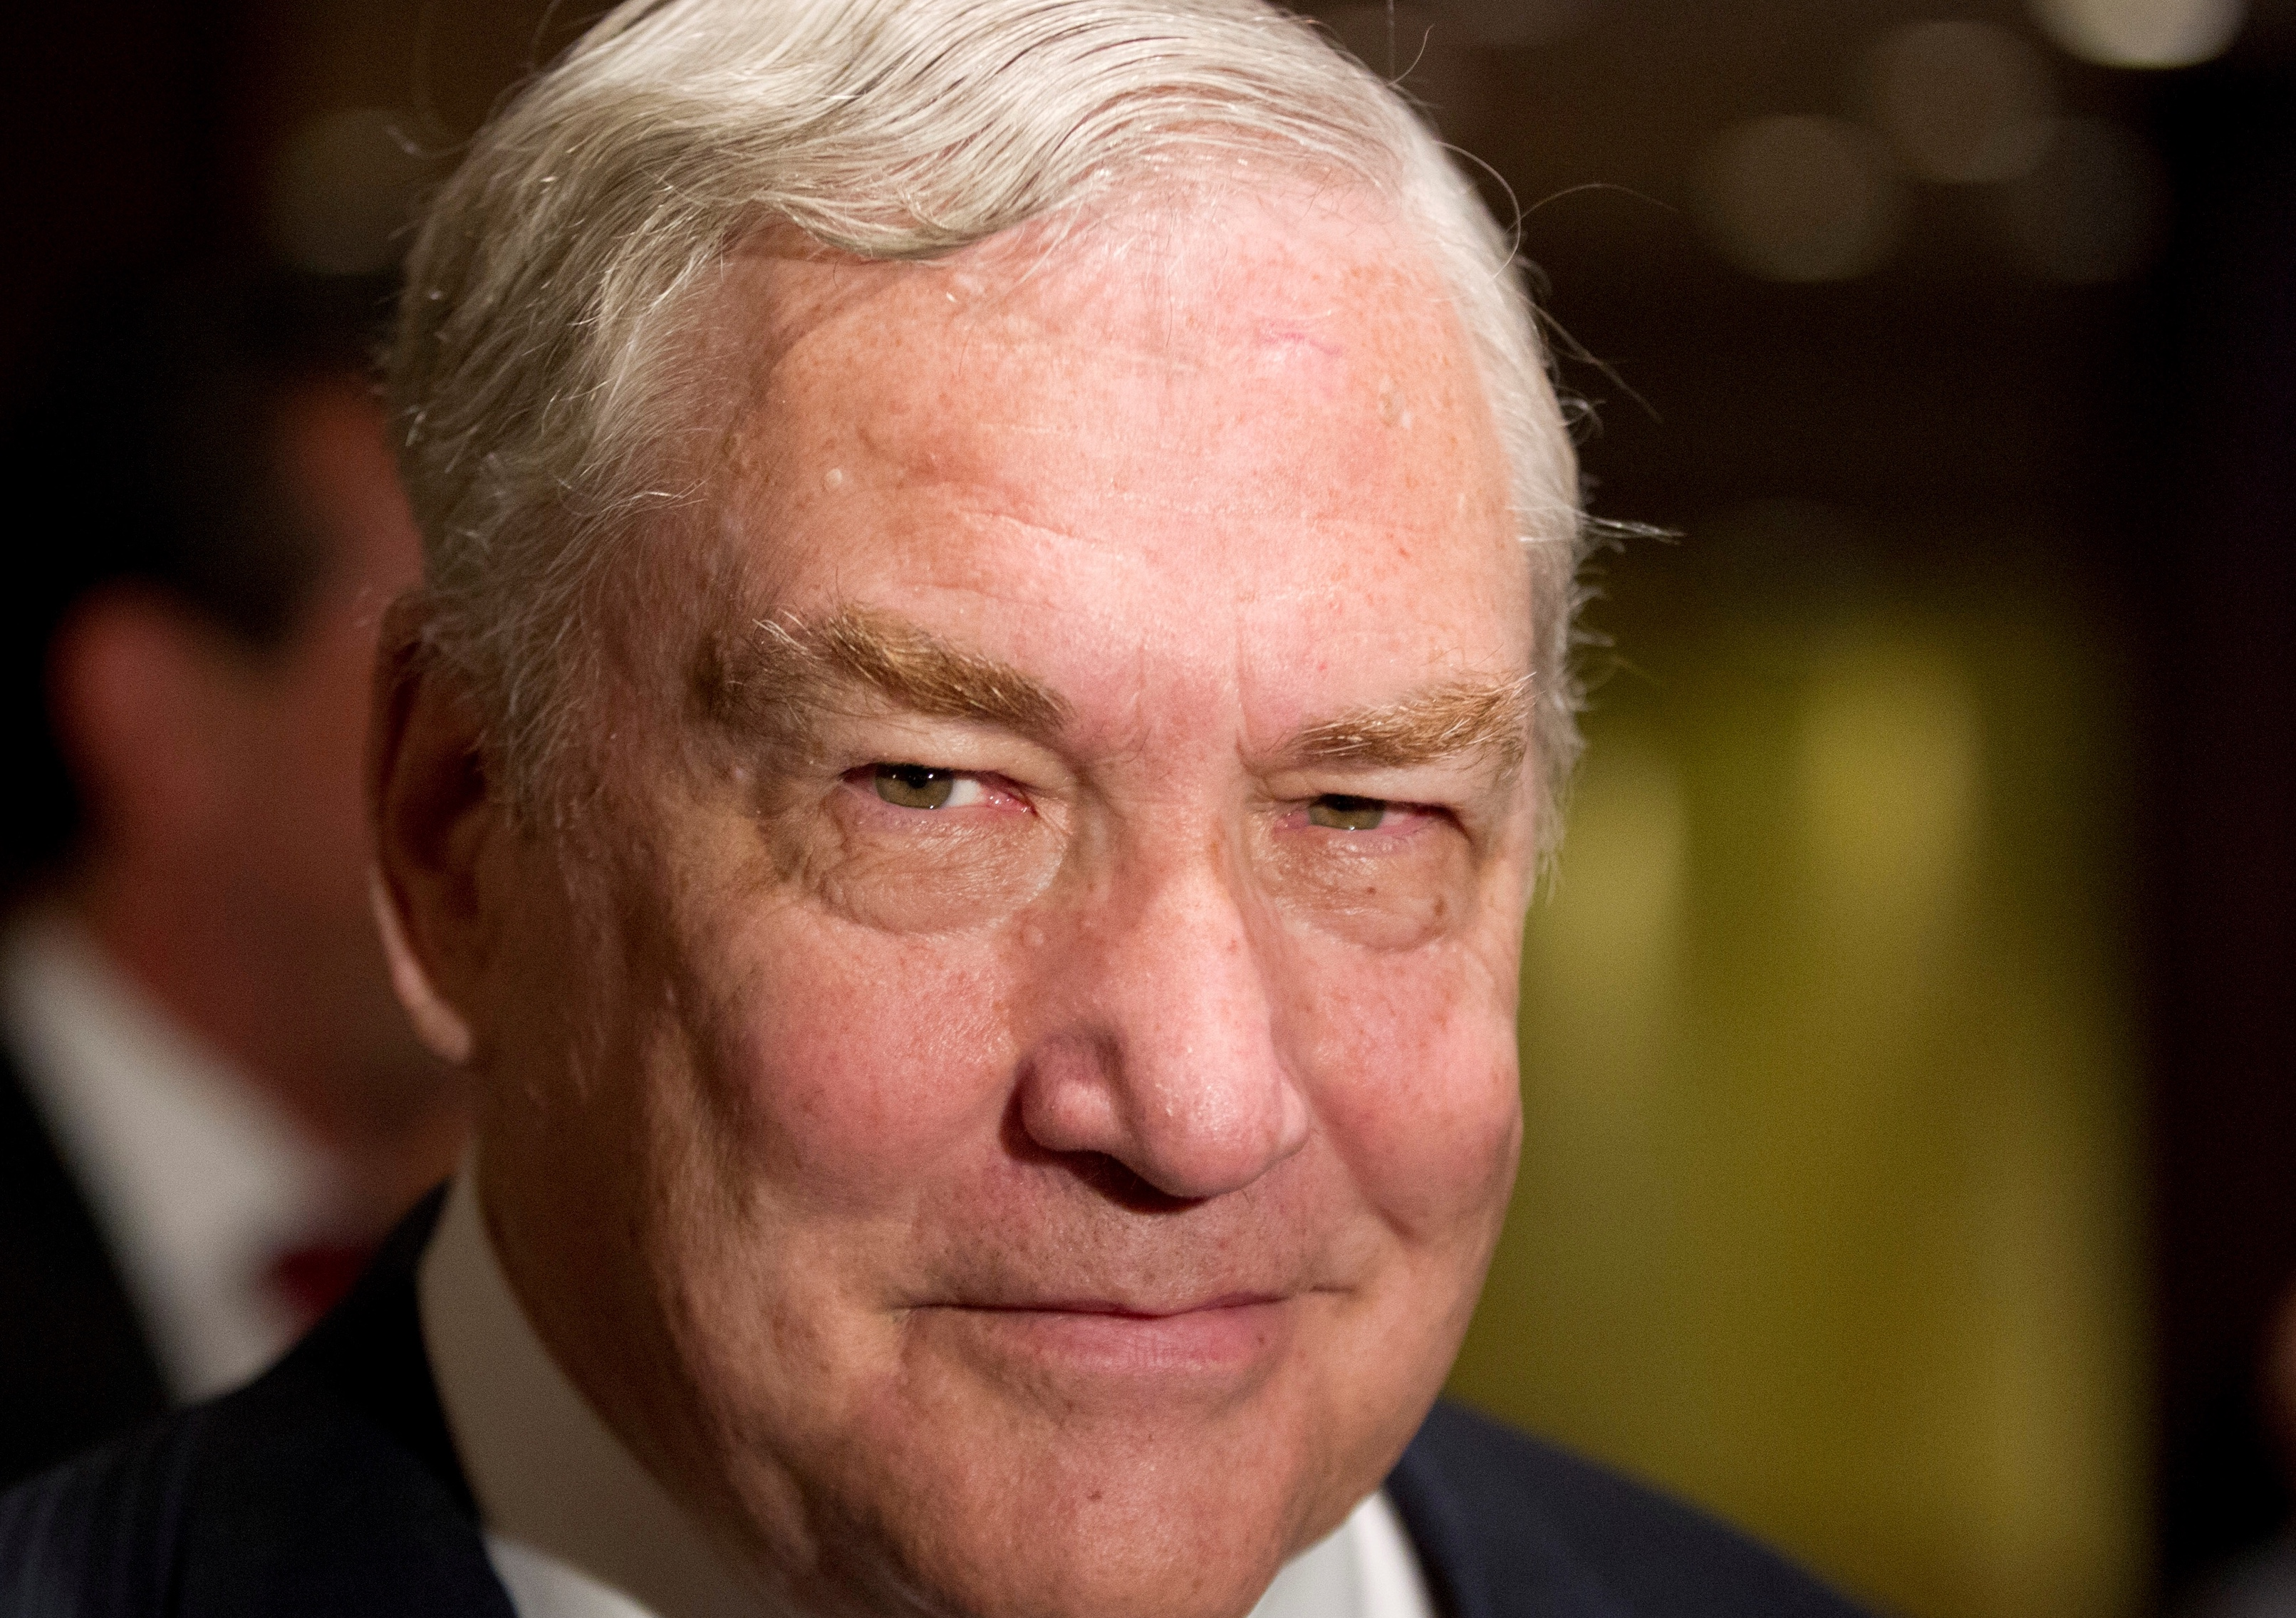 FILE PHOTO: Former media mogul Conrad Black arrives at a business luncheon in Toronto, Canada June 22, 2012. REUTERS/Mark Blinch/File Photo